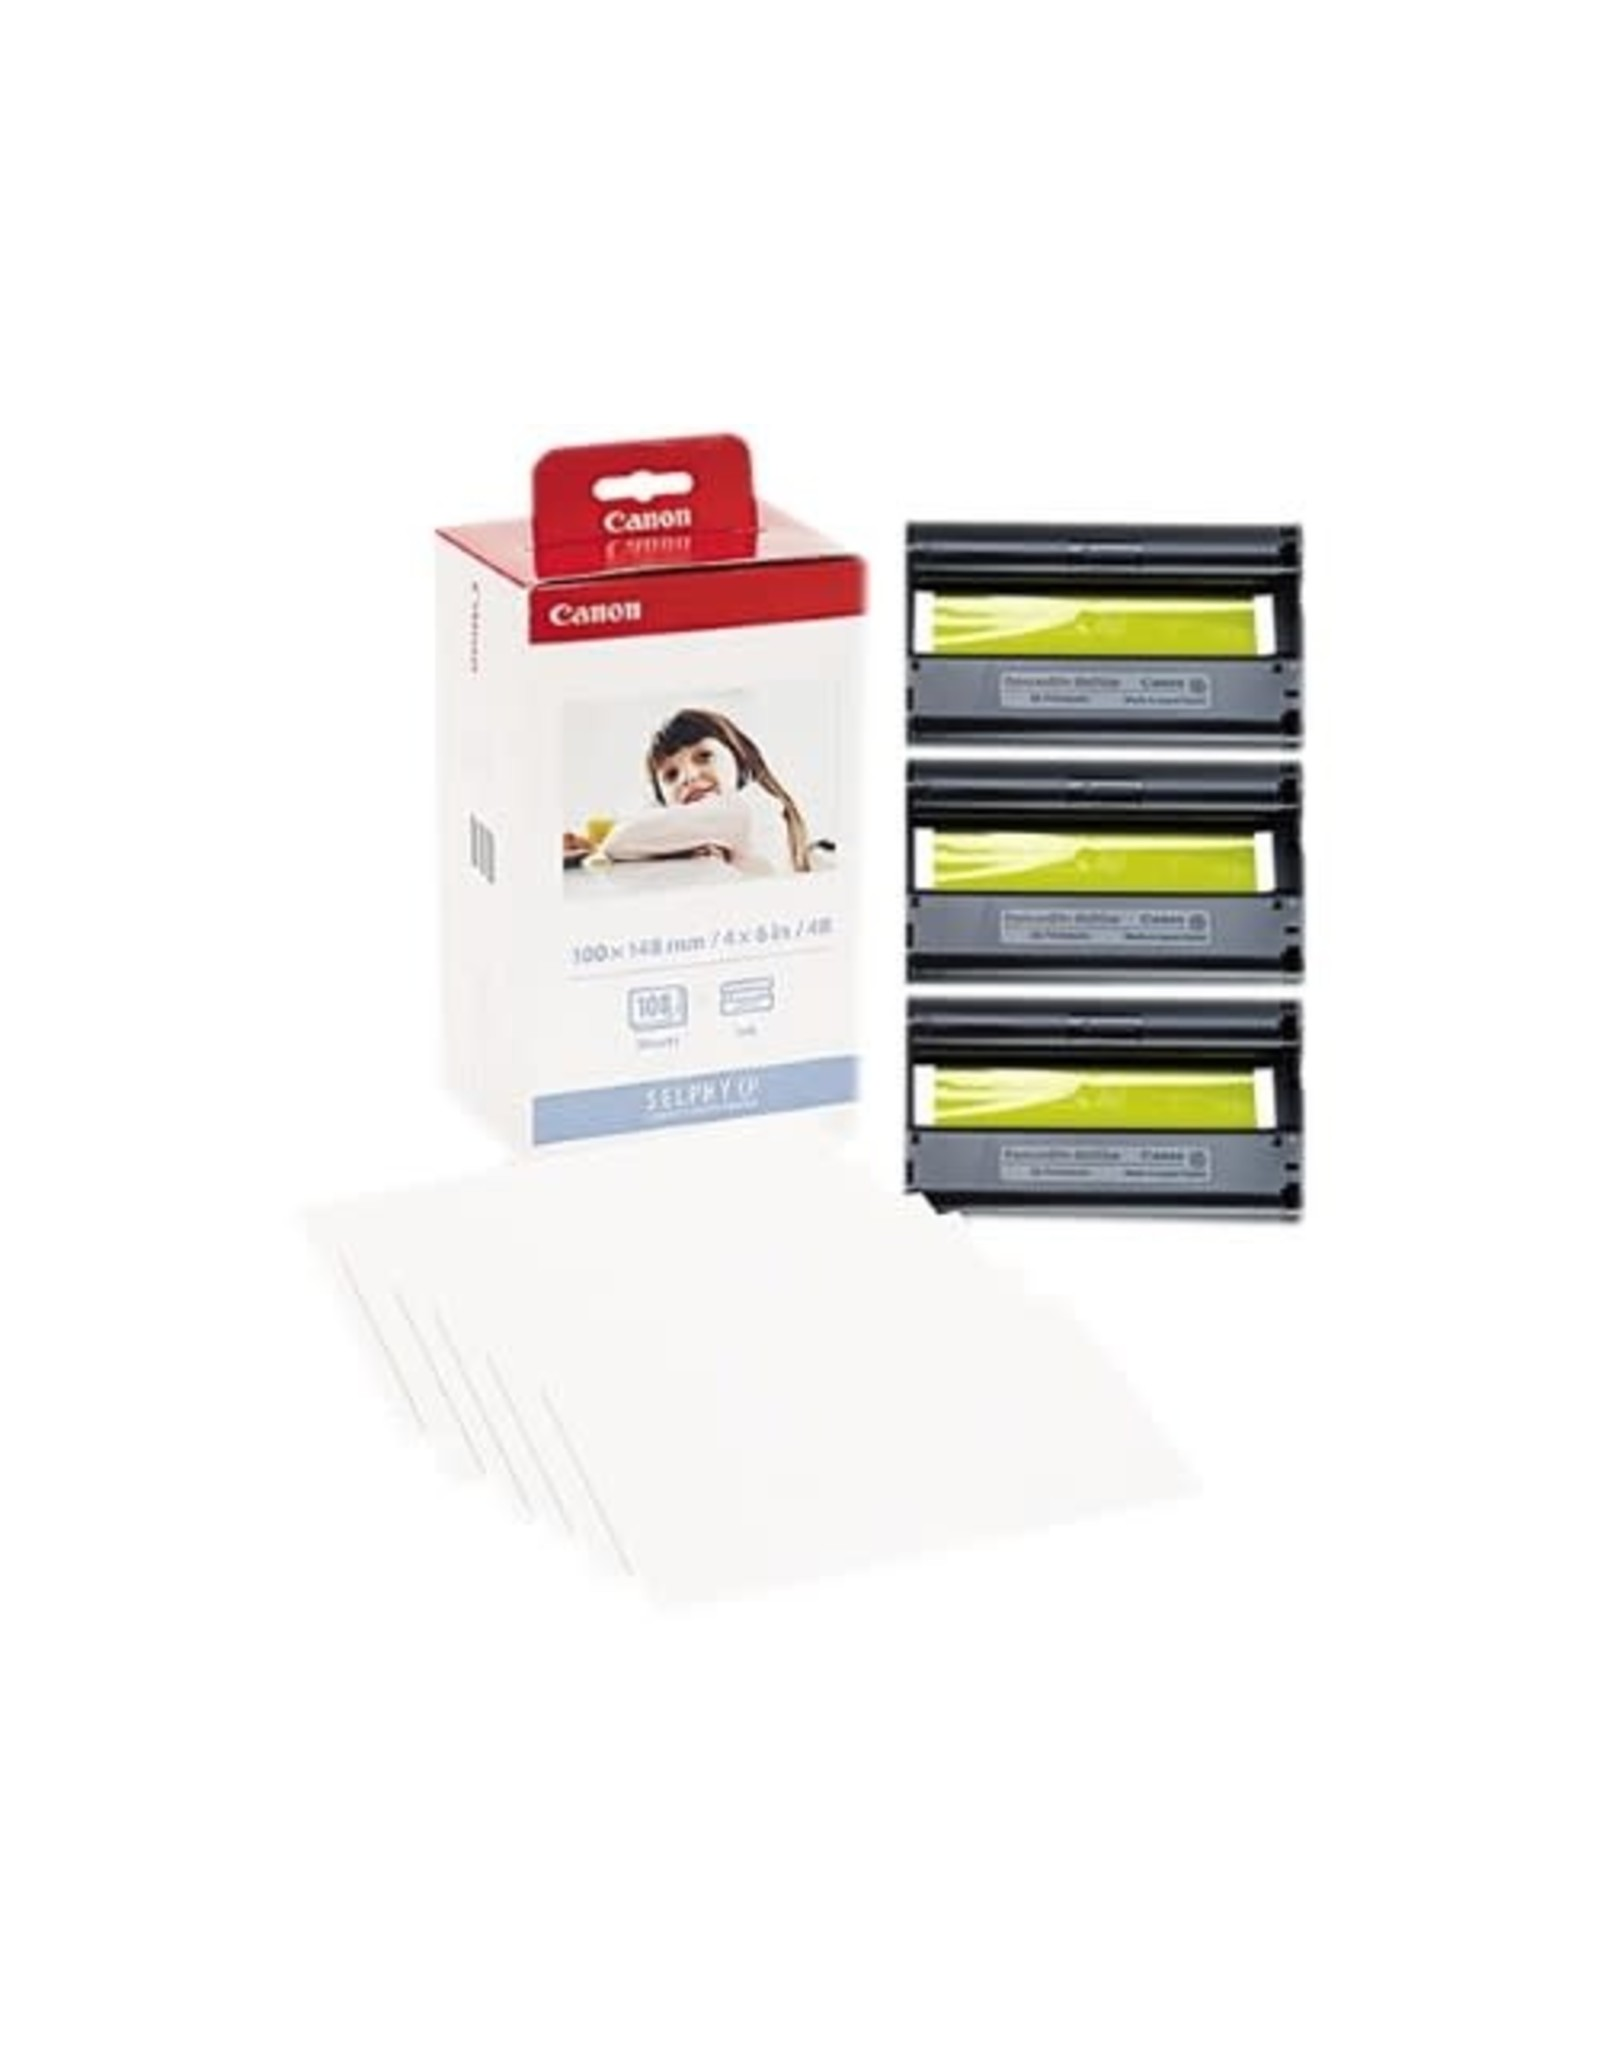 Canon INKJET CARTRIDGE-CANON KP-108IN COLOUR WITH 4X6 GLOSSY PAPER